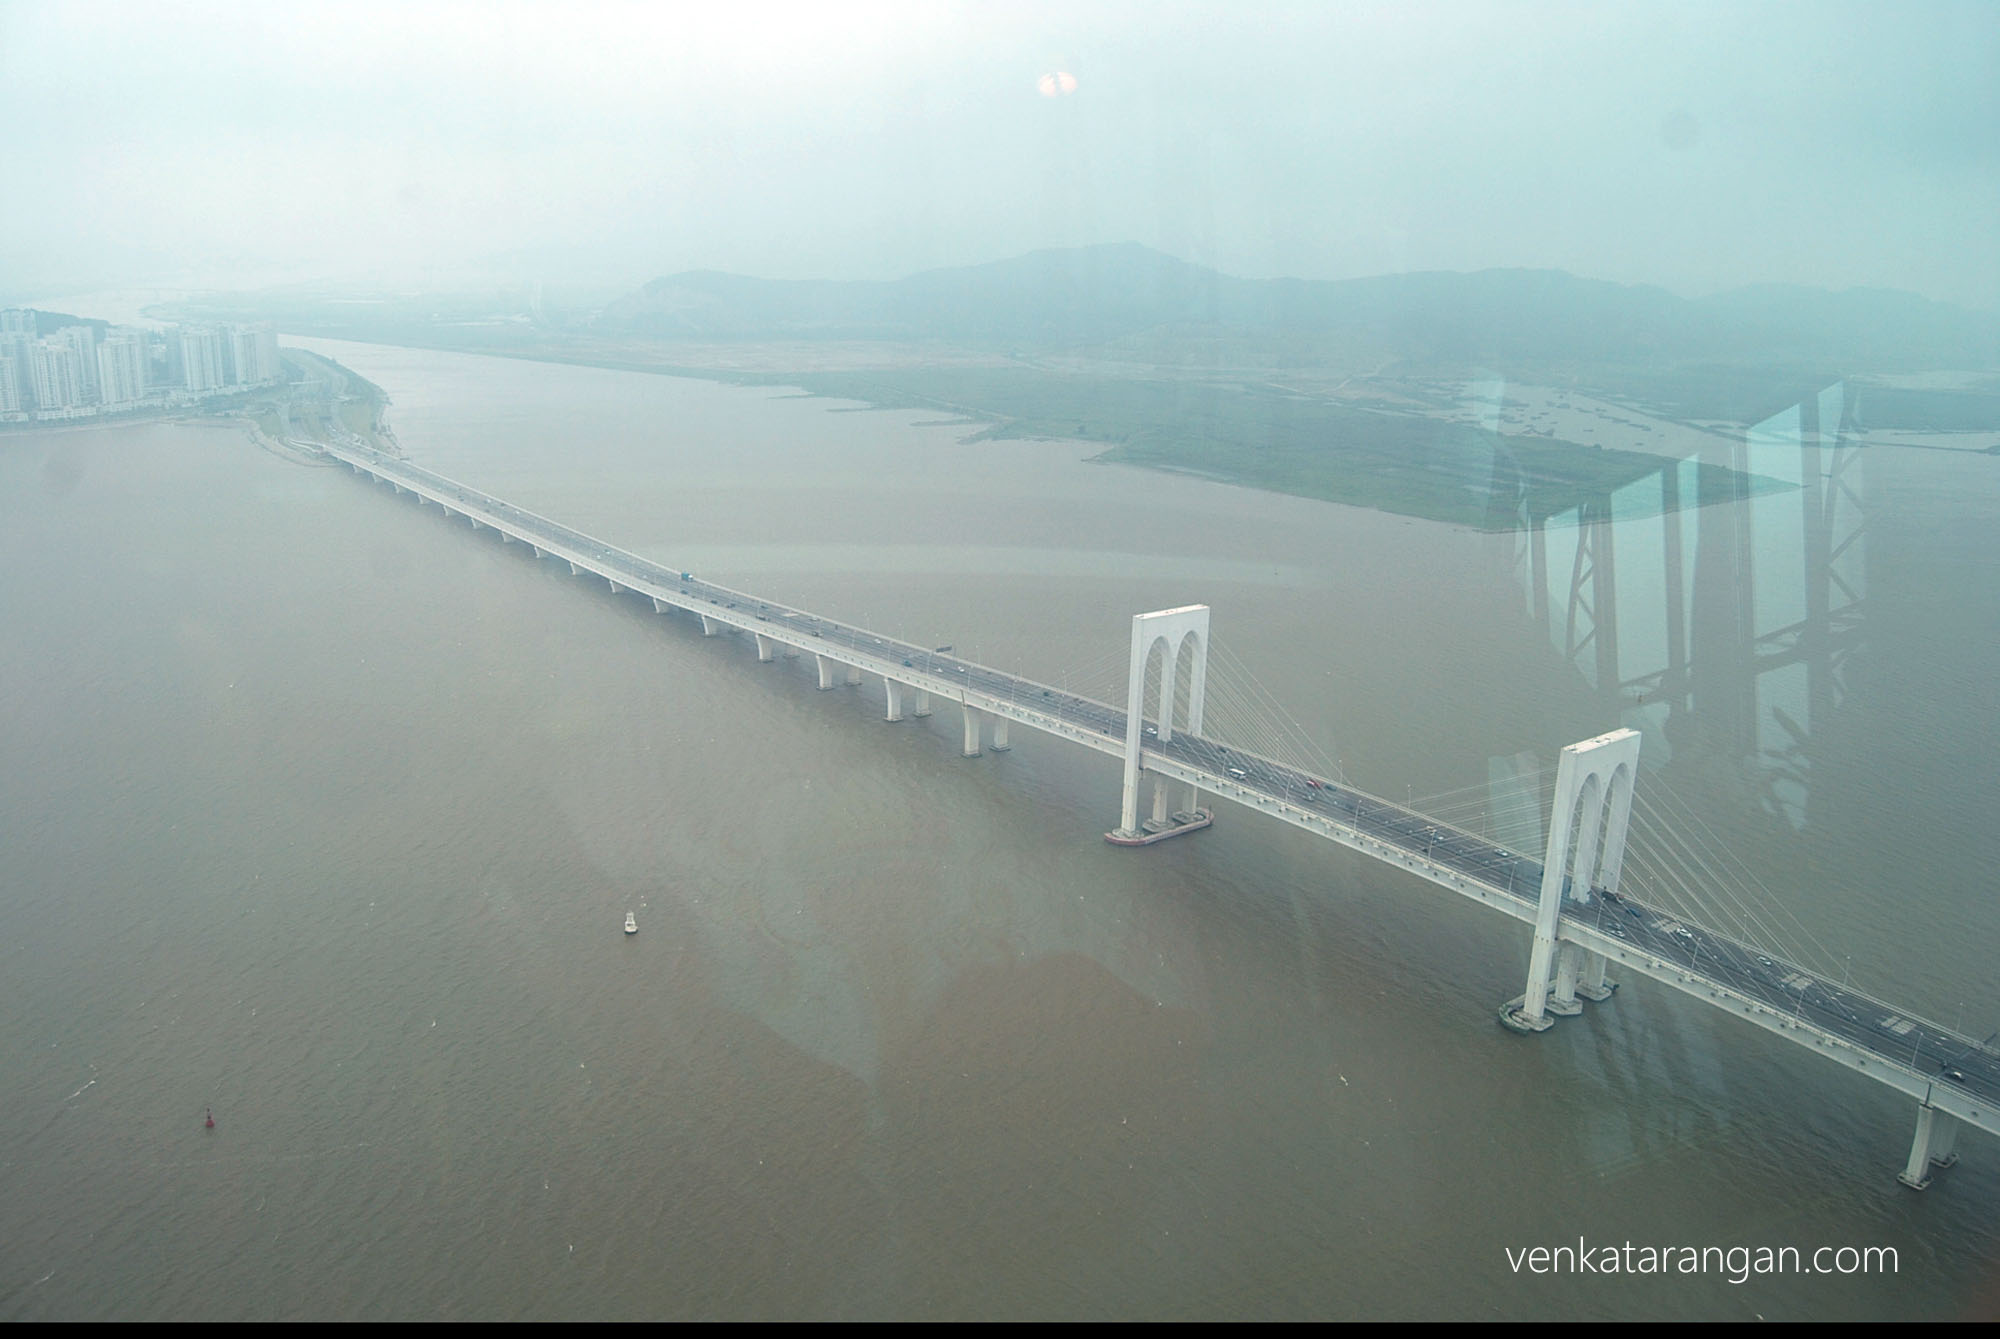 Bridge near Macau Tower 360